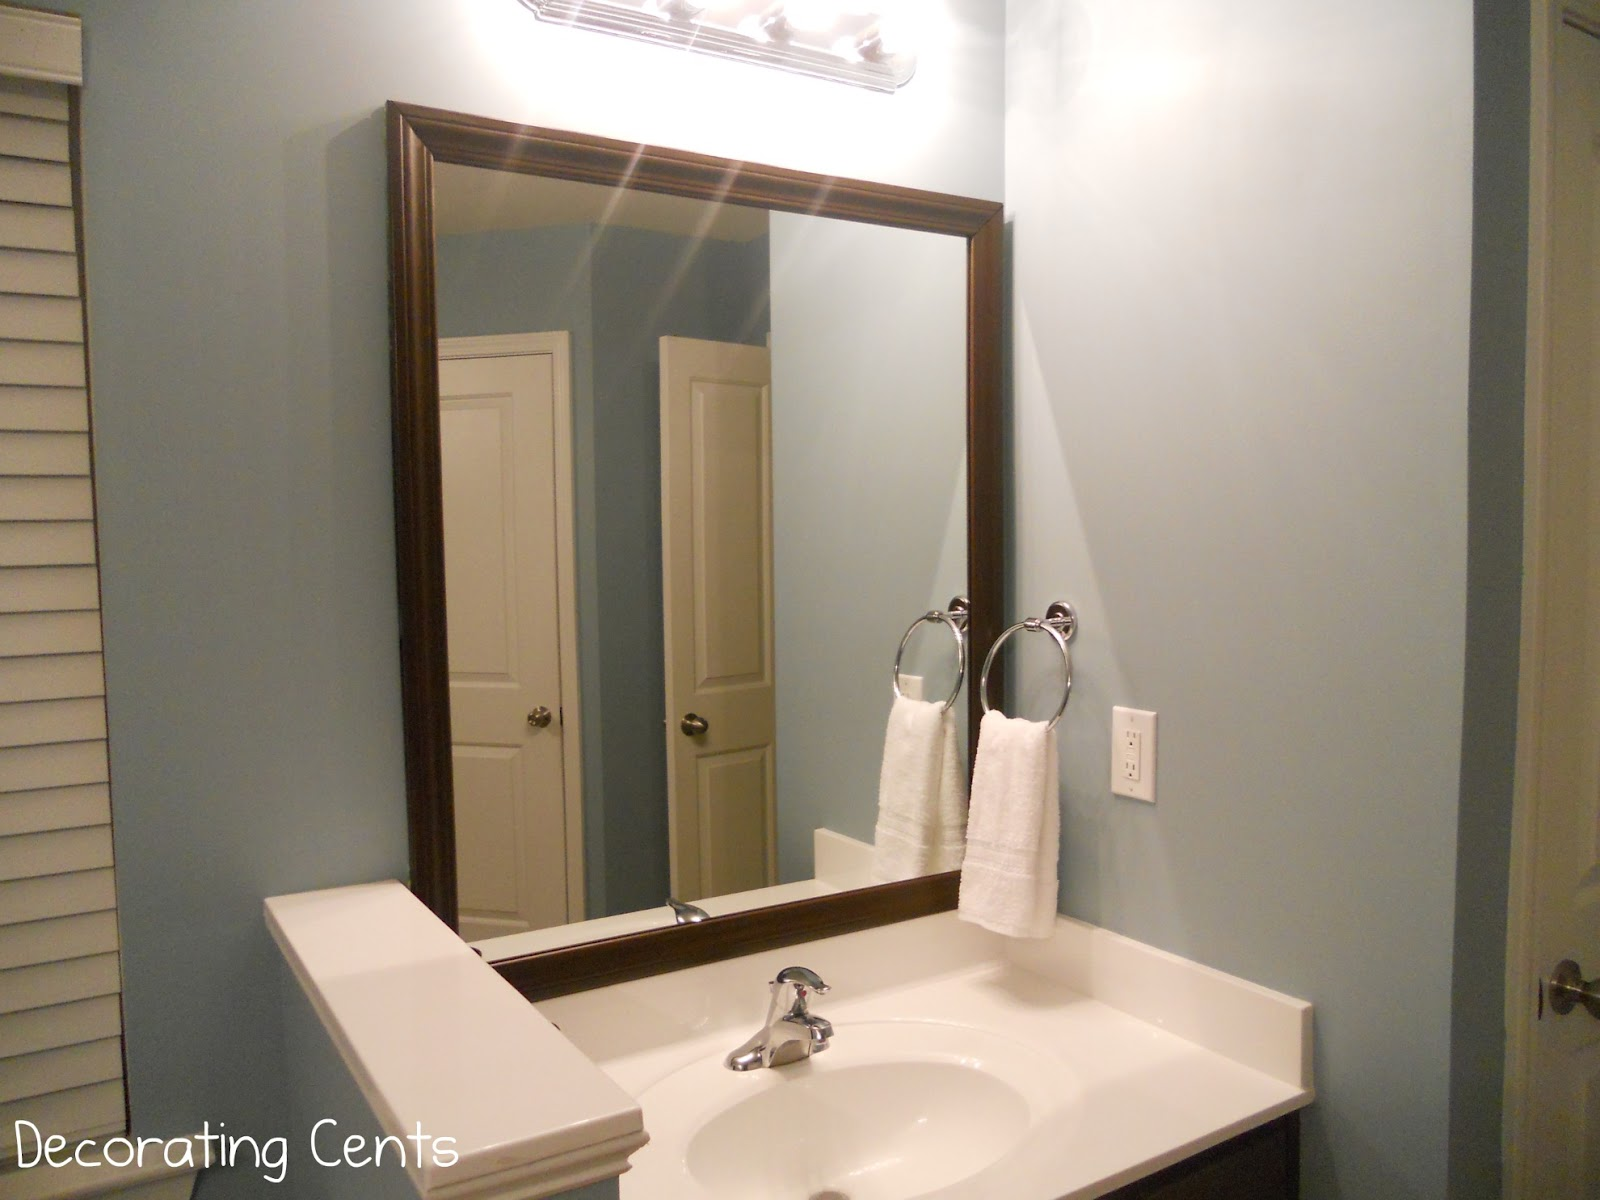 Decorating Cents: Framing The Bathroom Mirrors